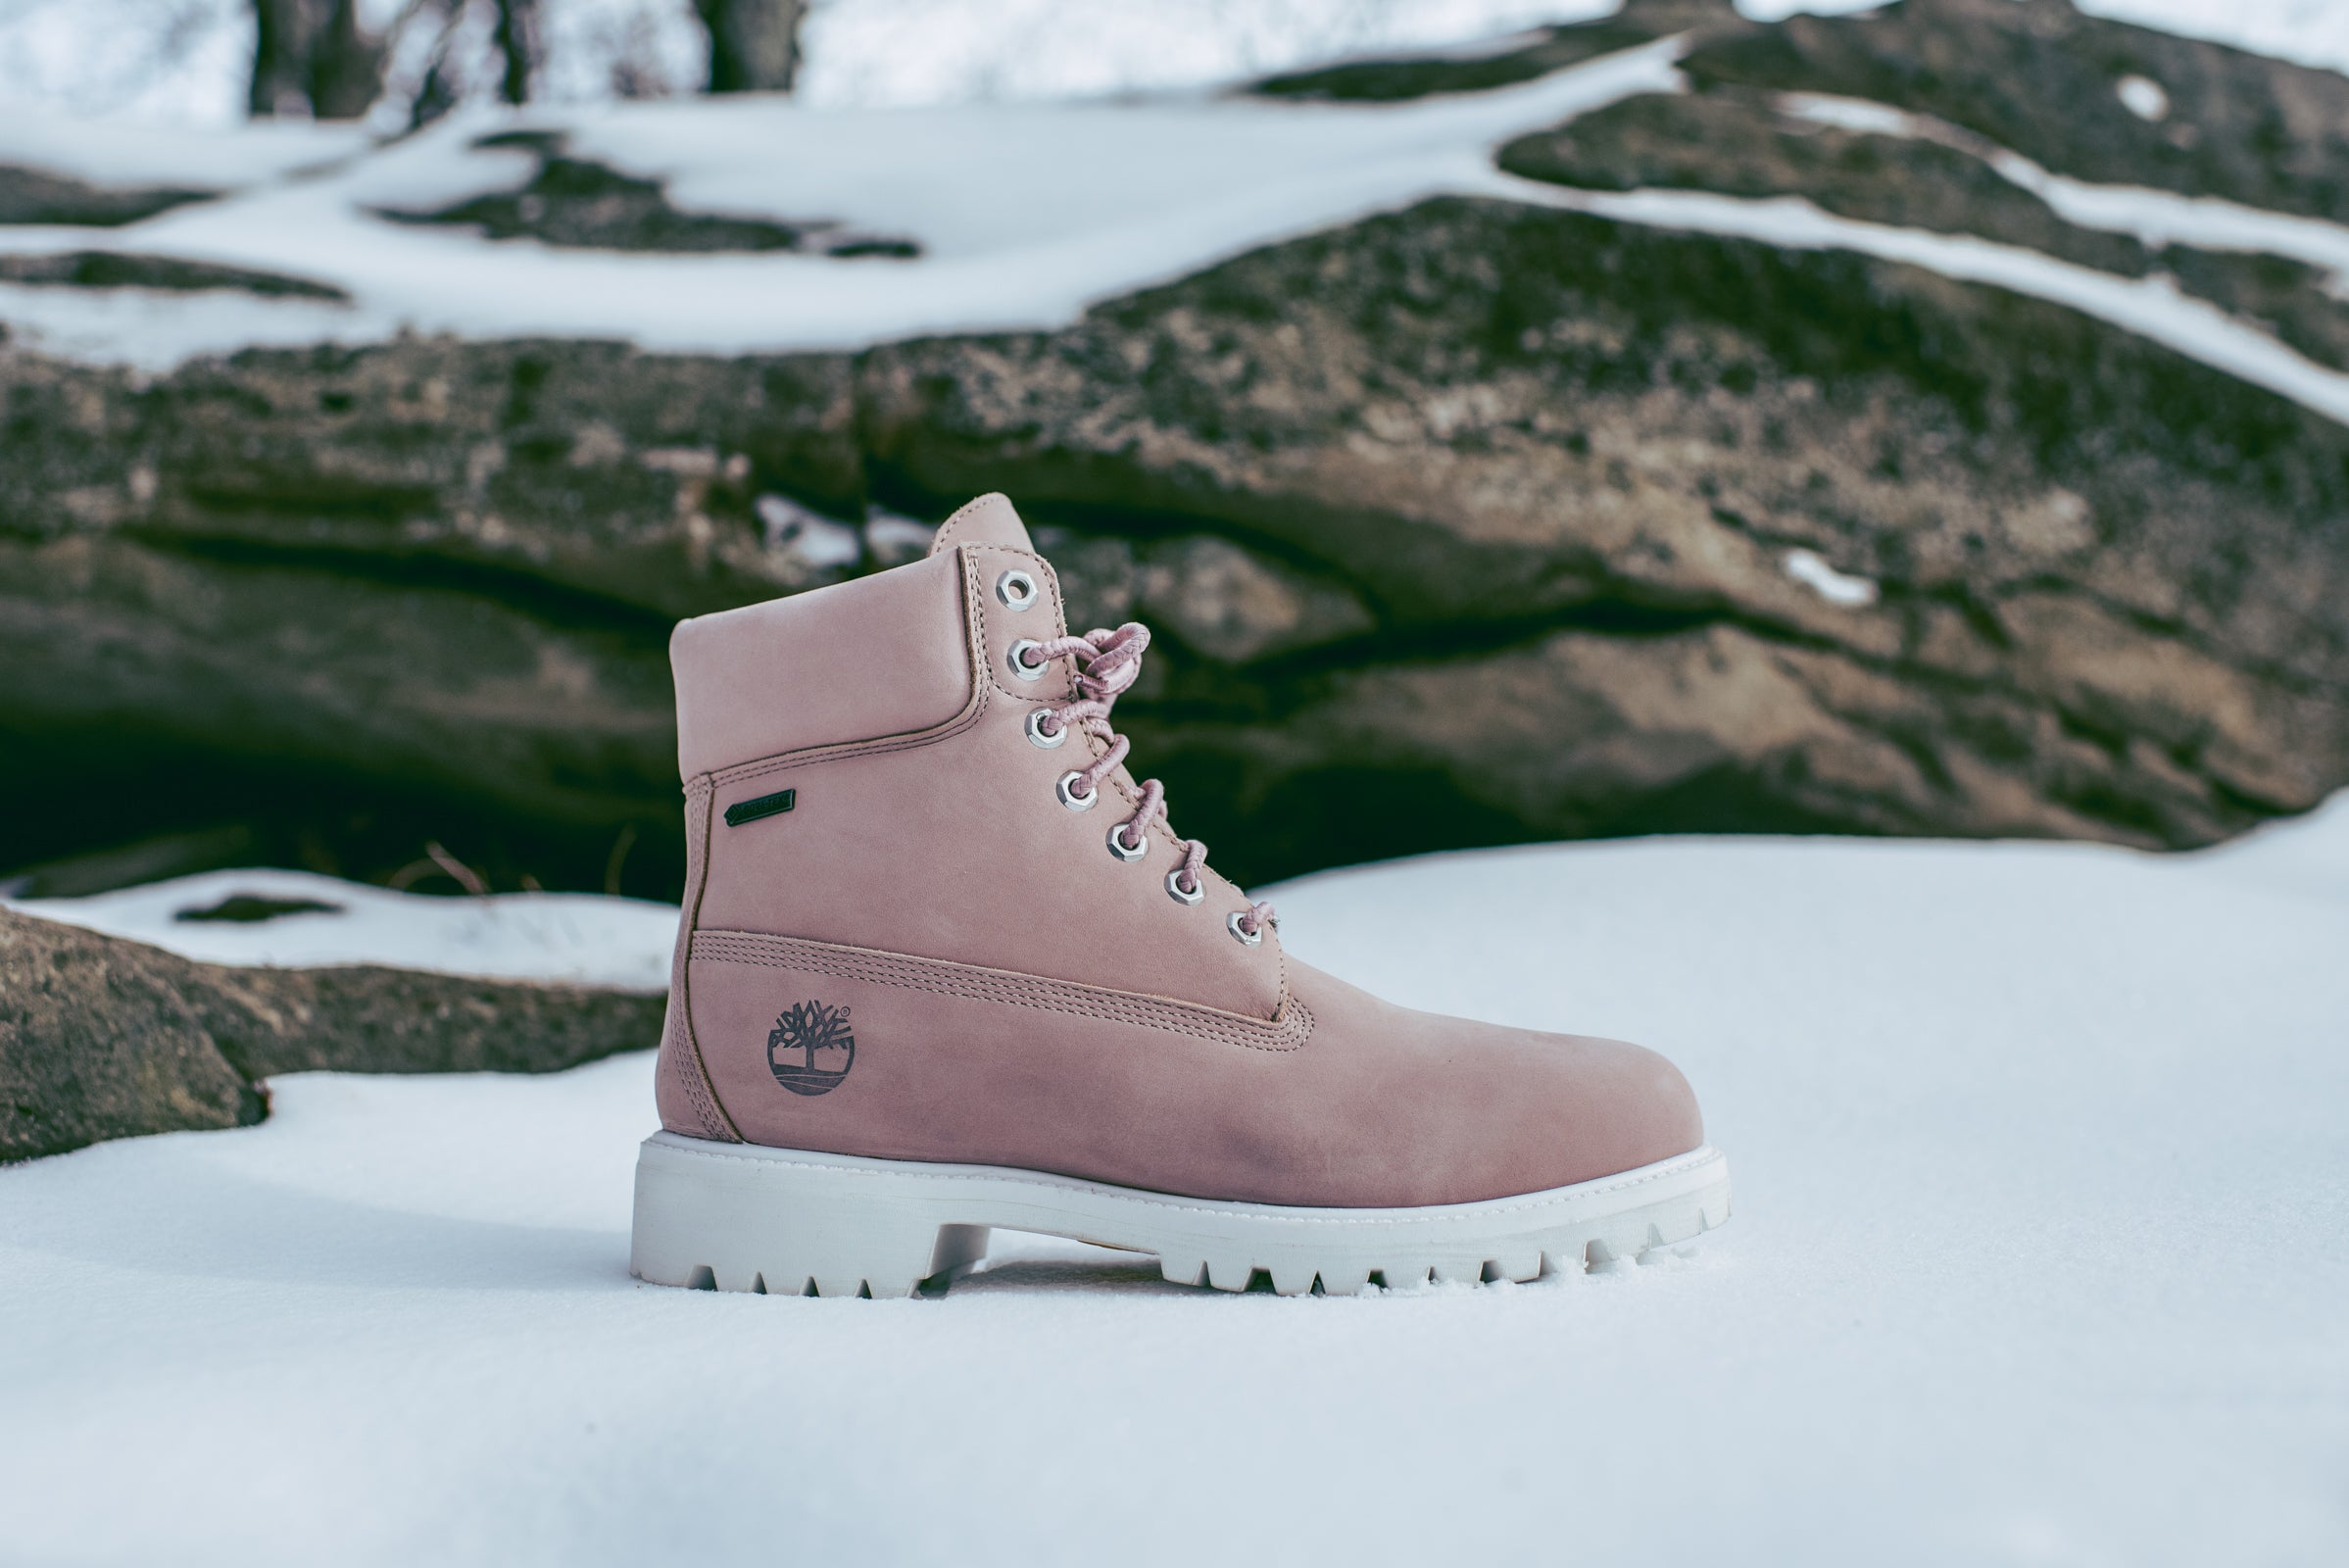 fb9713cef91 Ronnie Fieg x Timberland Collection for Kith Aspen